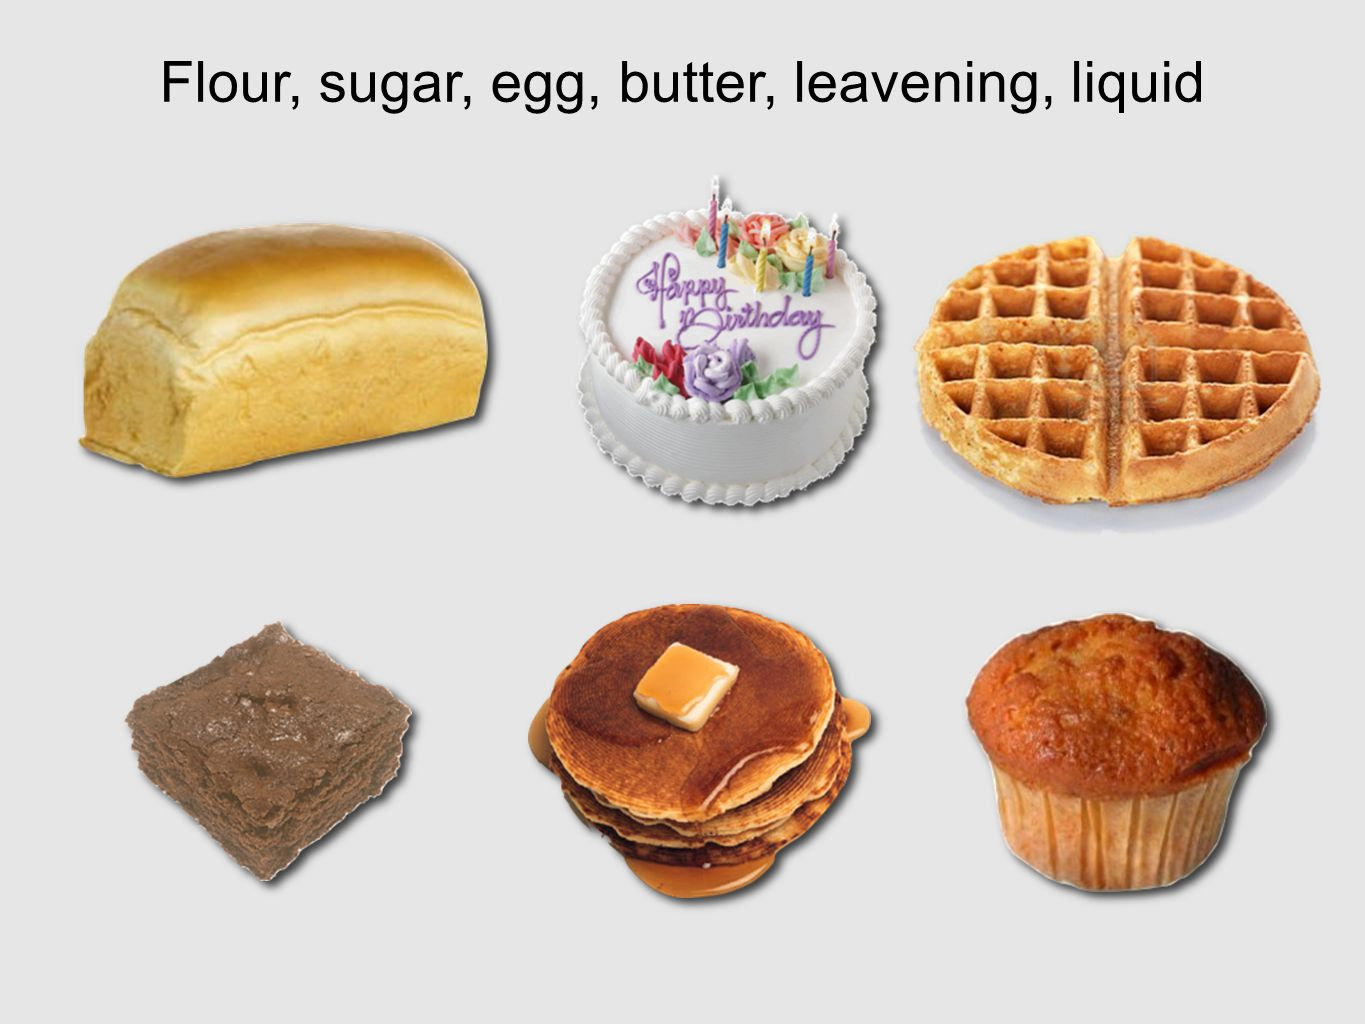 Flour, sugar, egg, butter, leavening, liquid